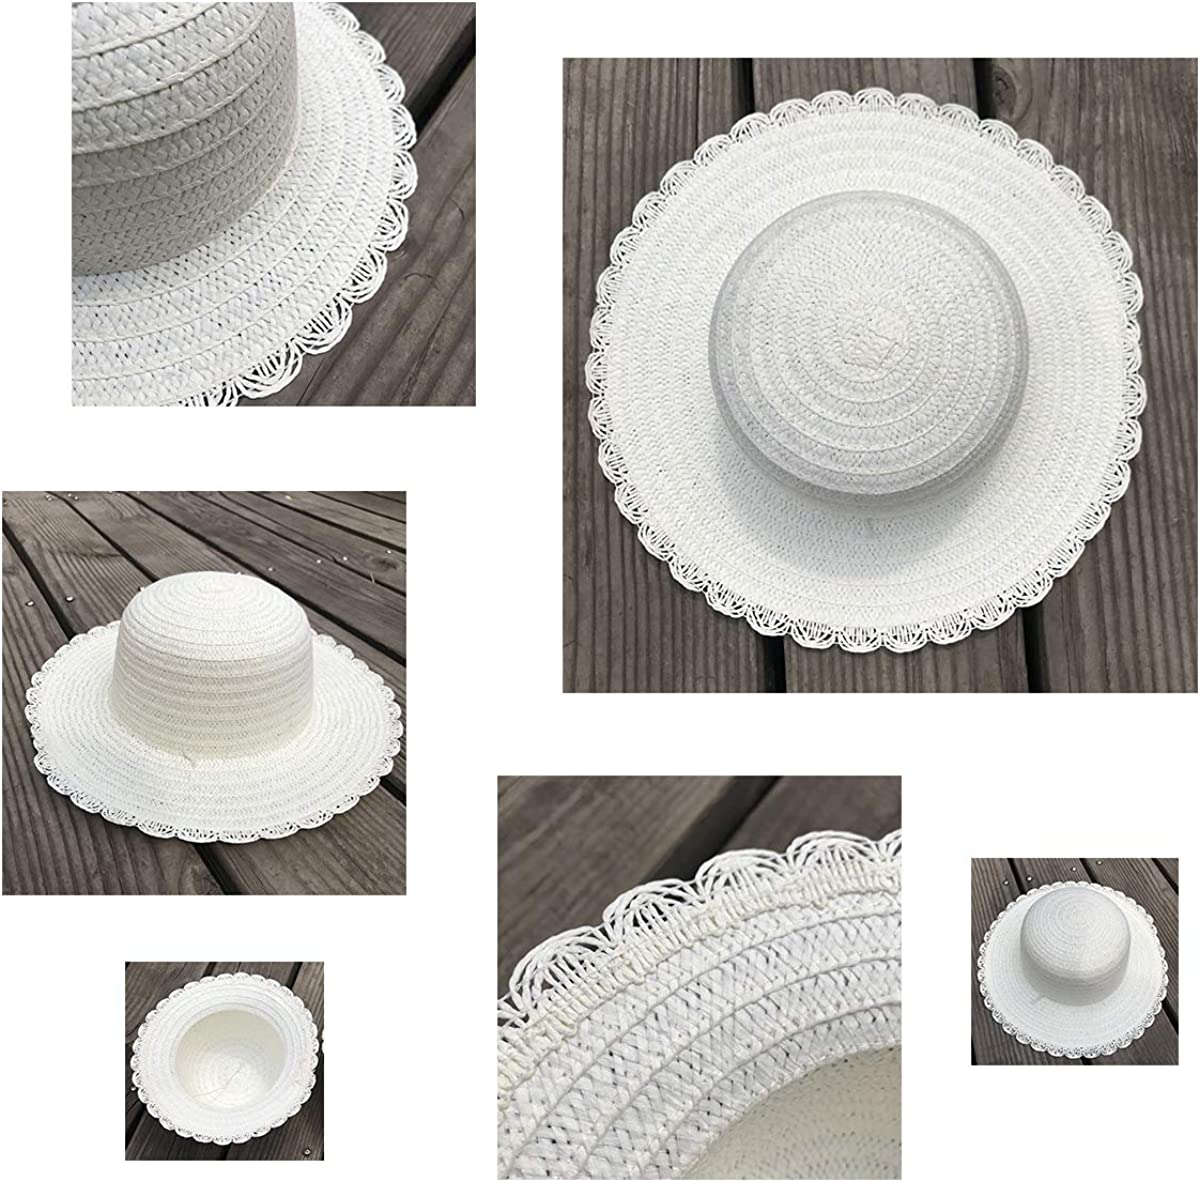 5 Laciness White Straw Hats 10Pcs DIY Straw Hats Set 5 Round White Straw Hats for Kids Creative Art Painting /& DIY Tea Party Dress Up Hats